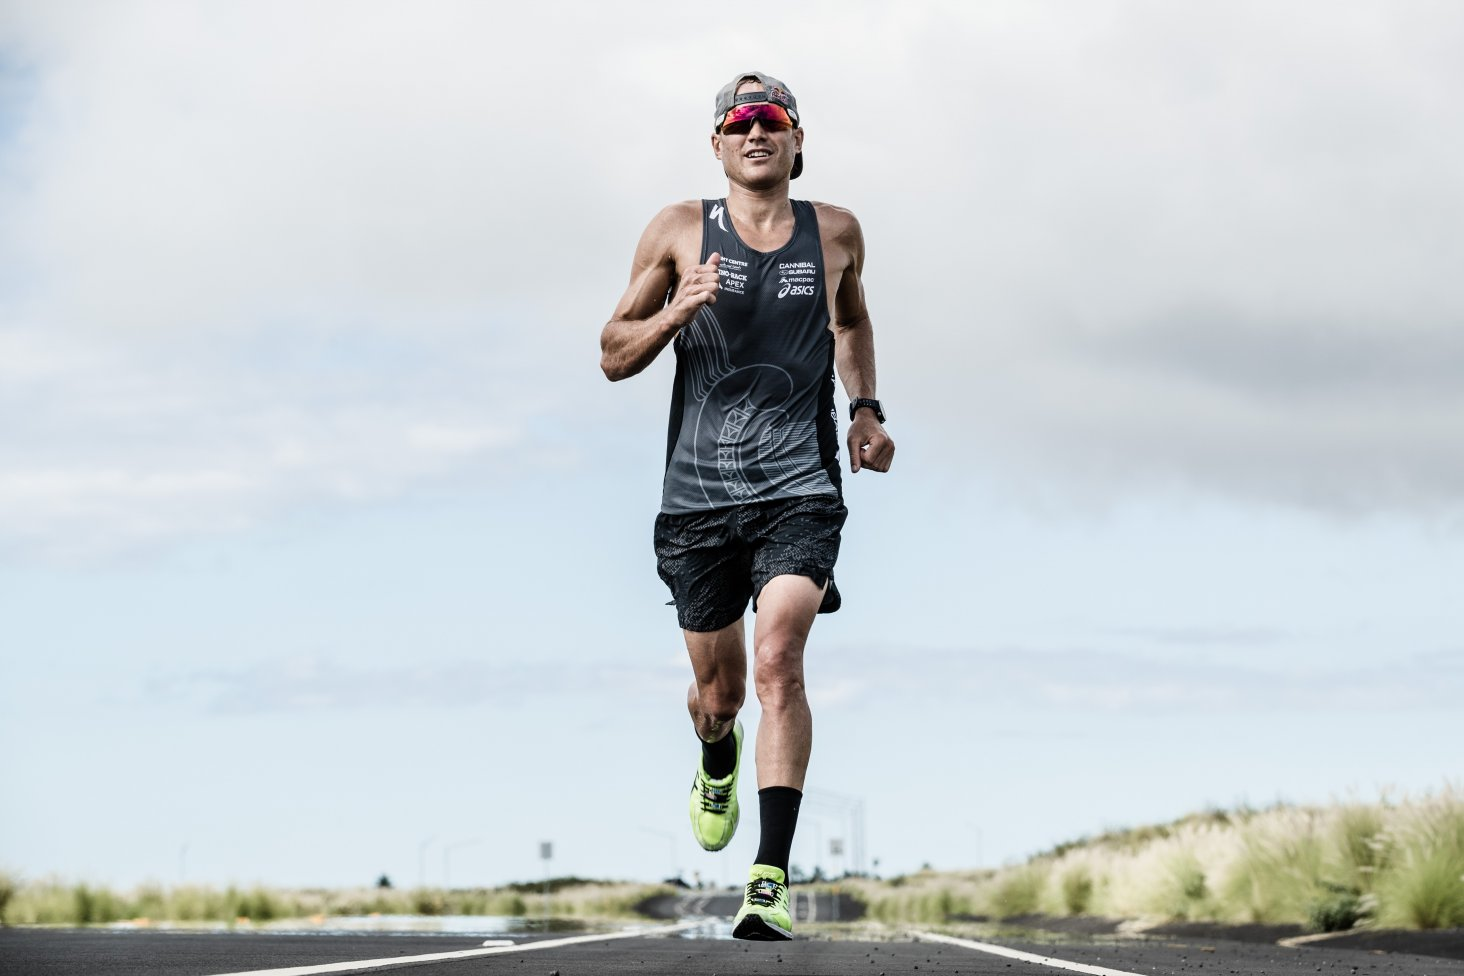 Subaru brand ambassador Braden Currie is about to embark on a race against the world's best endurance athletes, at the World Ironman Championships in Hawaii. PHOTO: KORUPT VISION.